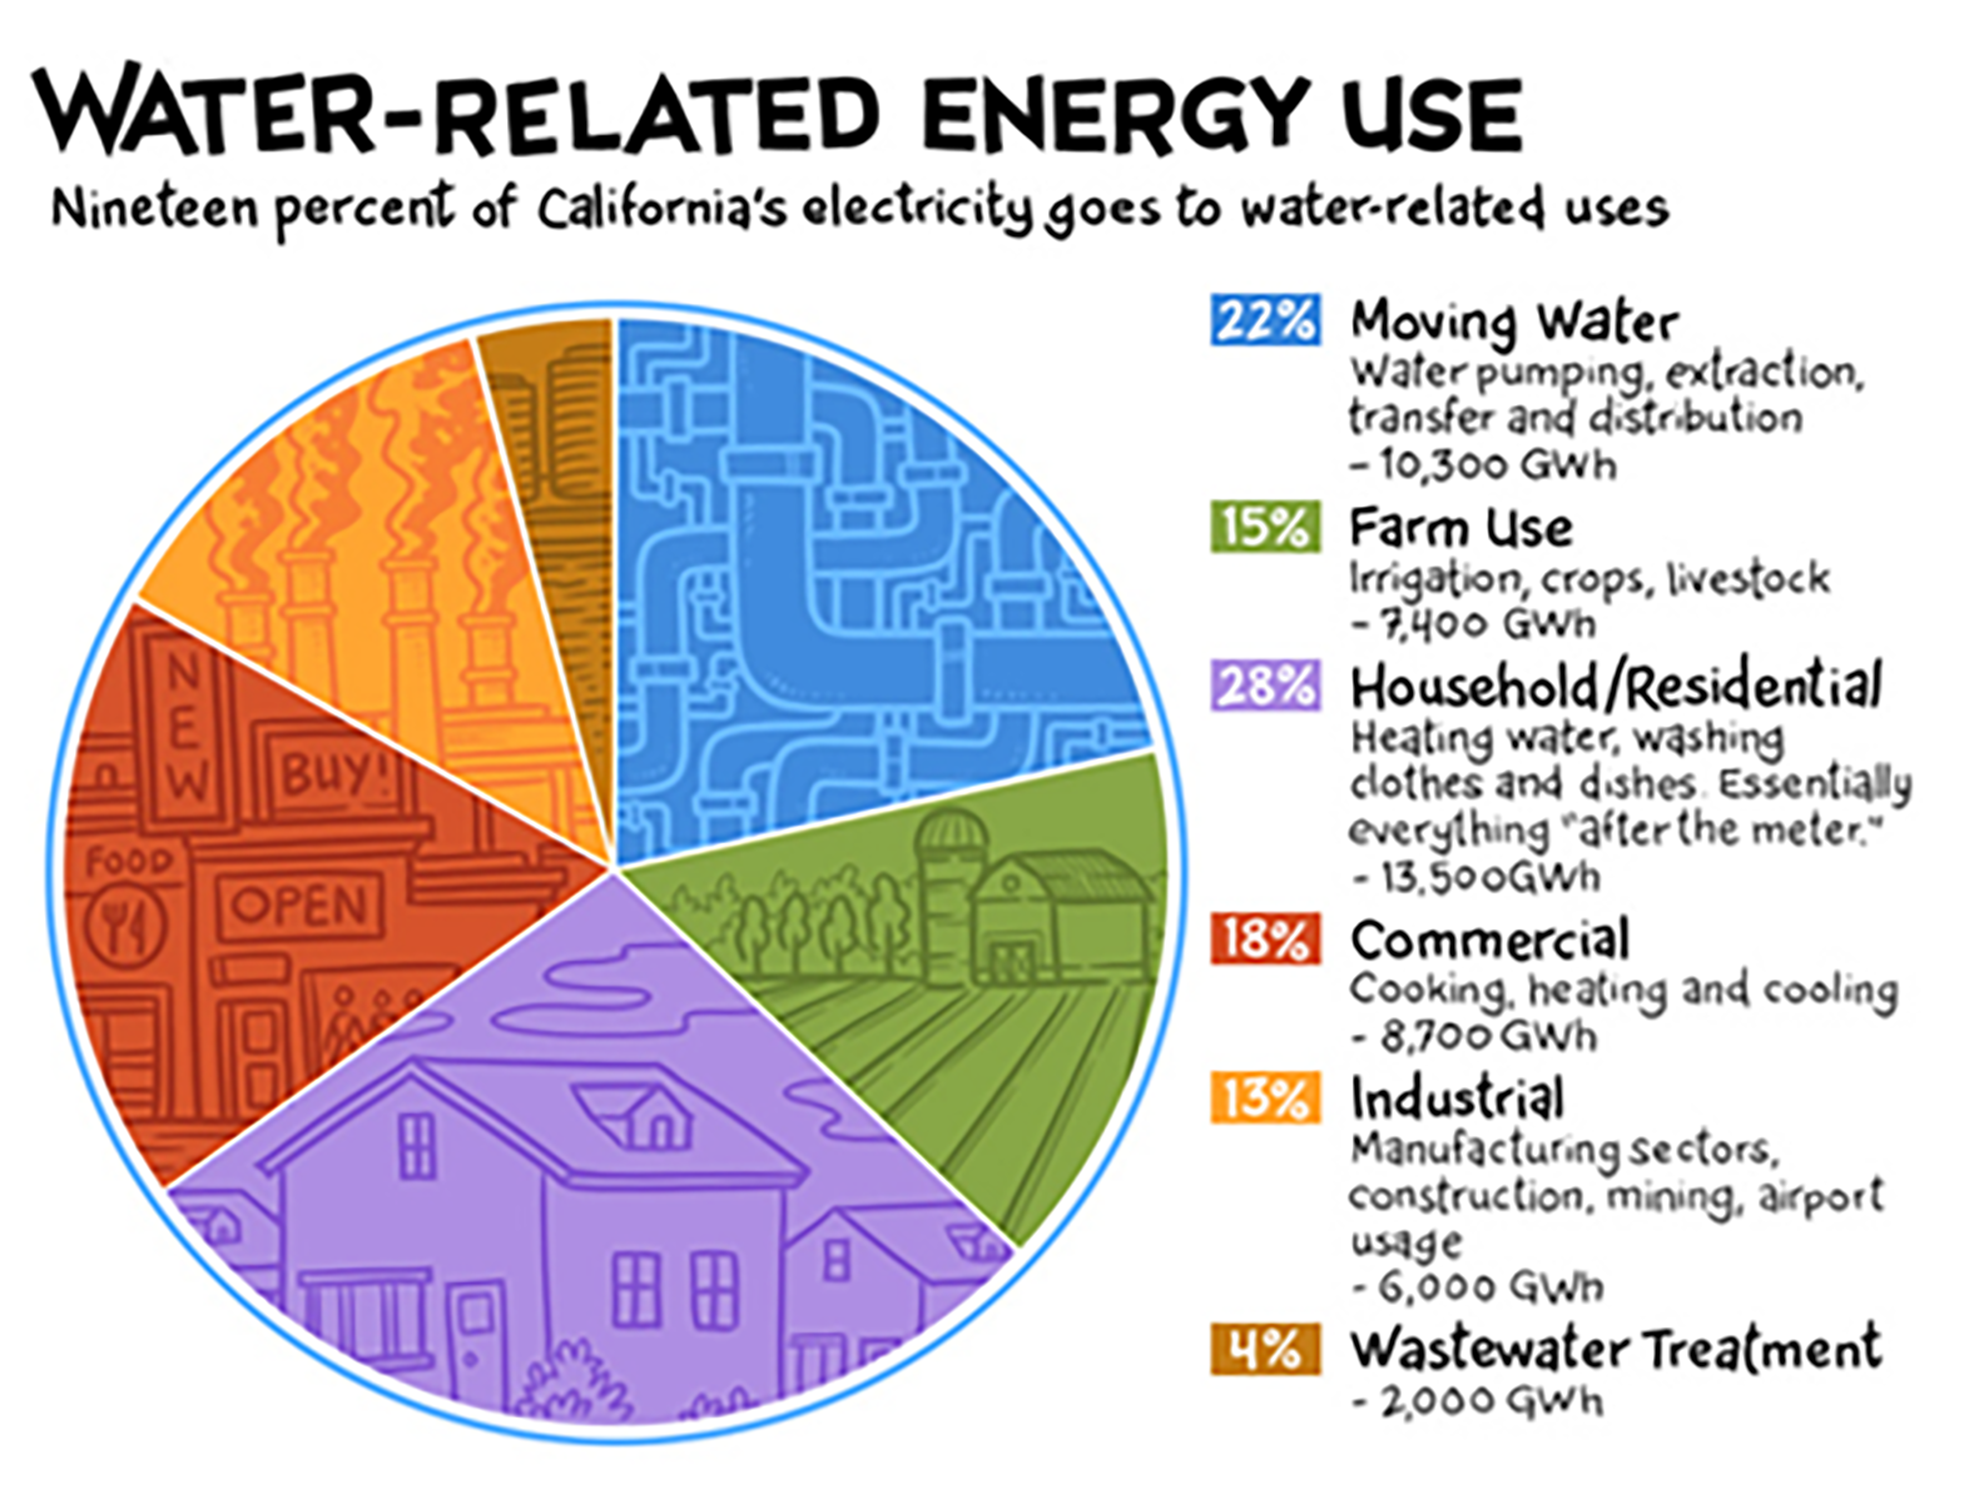 Water-related energy use pie graph. 22% is moving water, 15% is farm us, 28% is household/residential, 18% commercial, 13$ industrial and 4$ to wastewater treatment